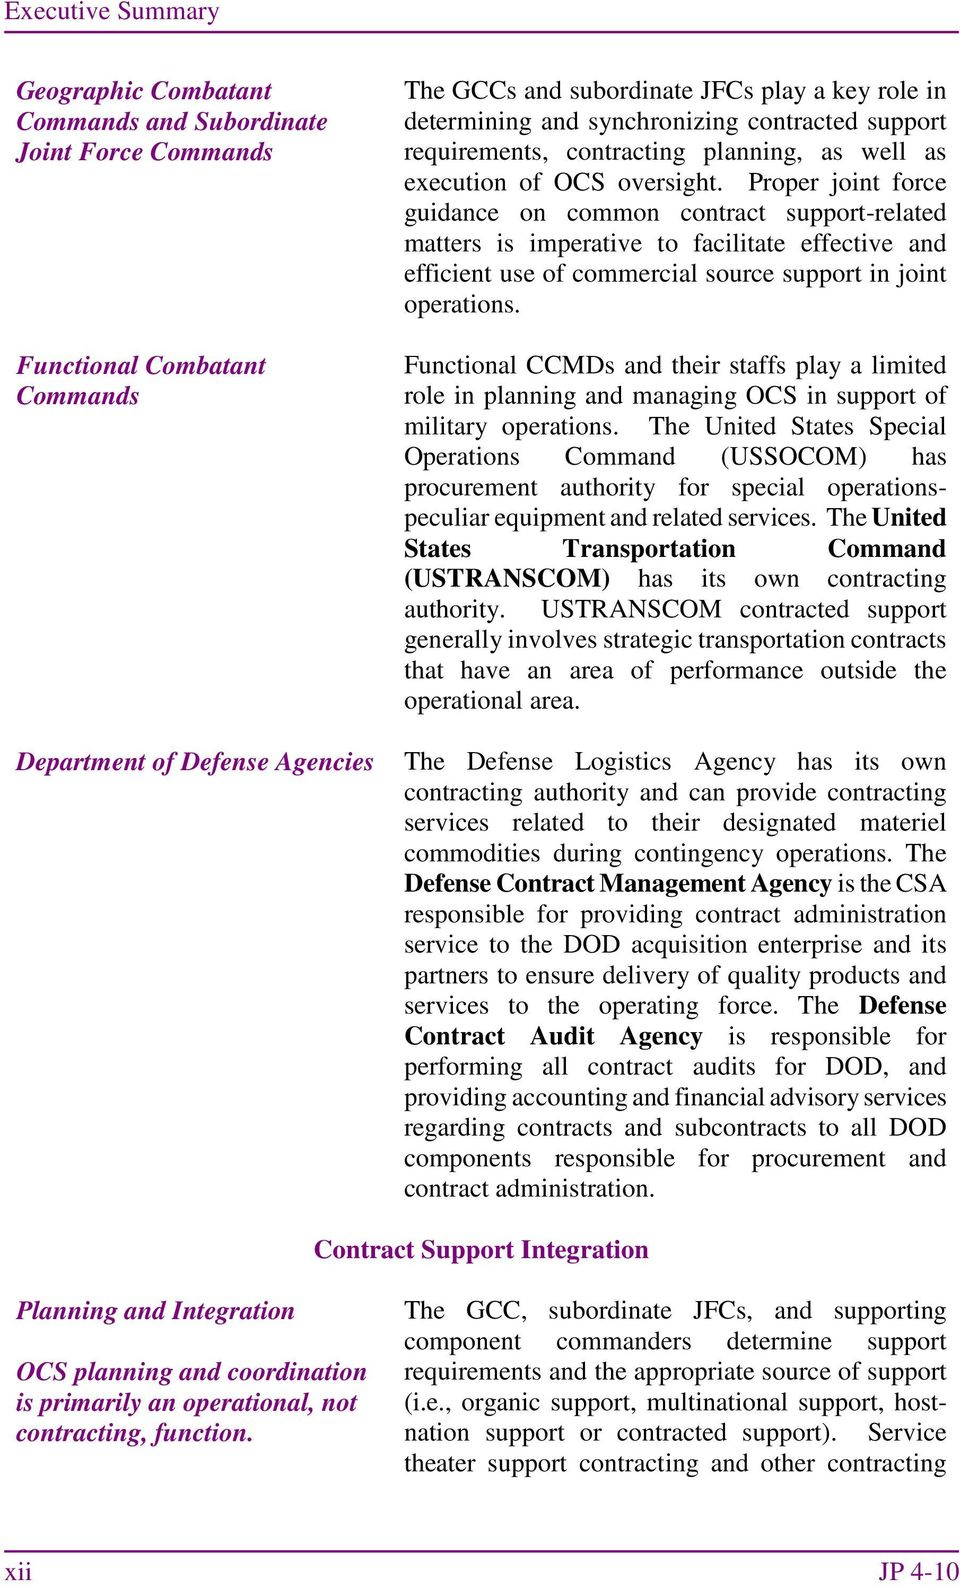 Proper joint force guidance on common contract support-related matters is imperative to facilitate effective and efficient use of commercial source support in joint operations.